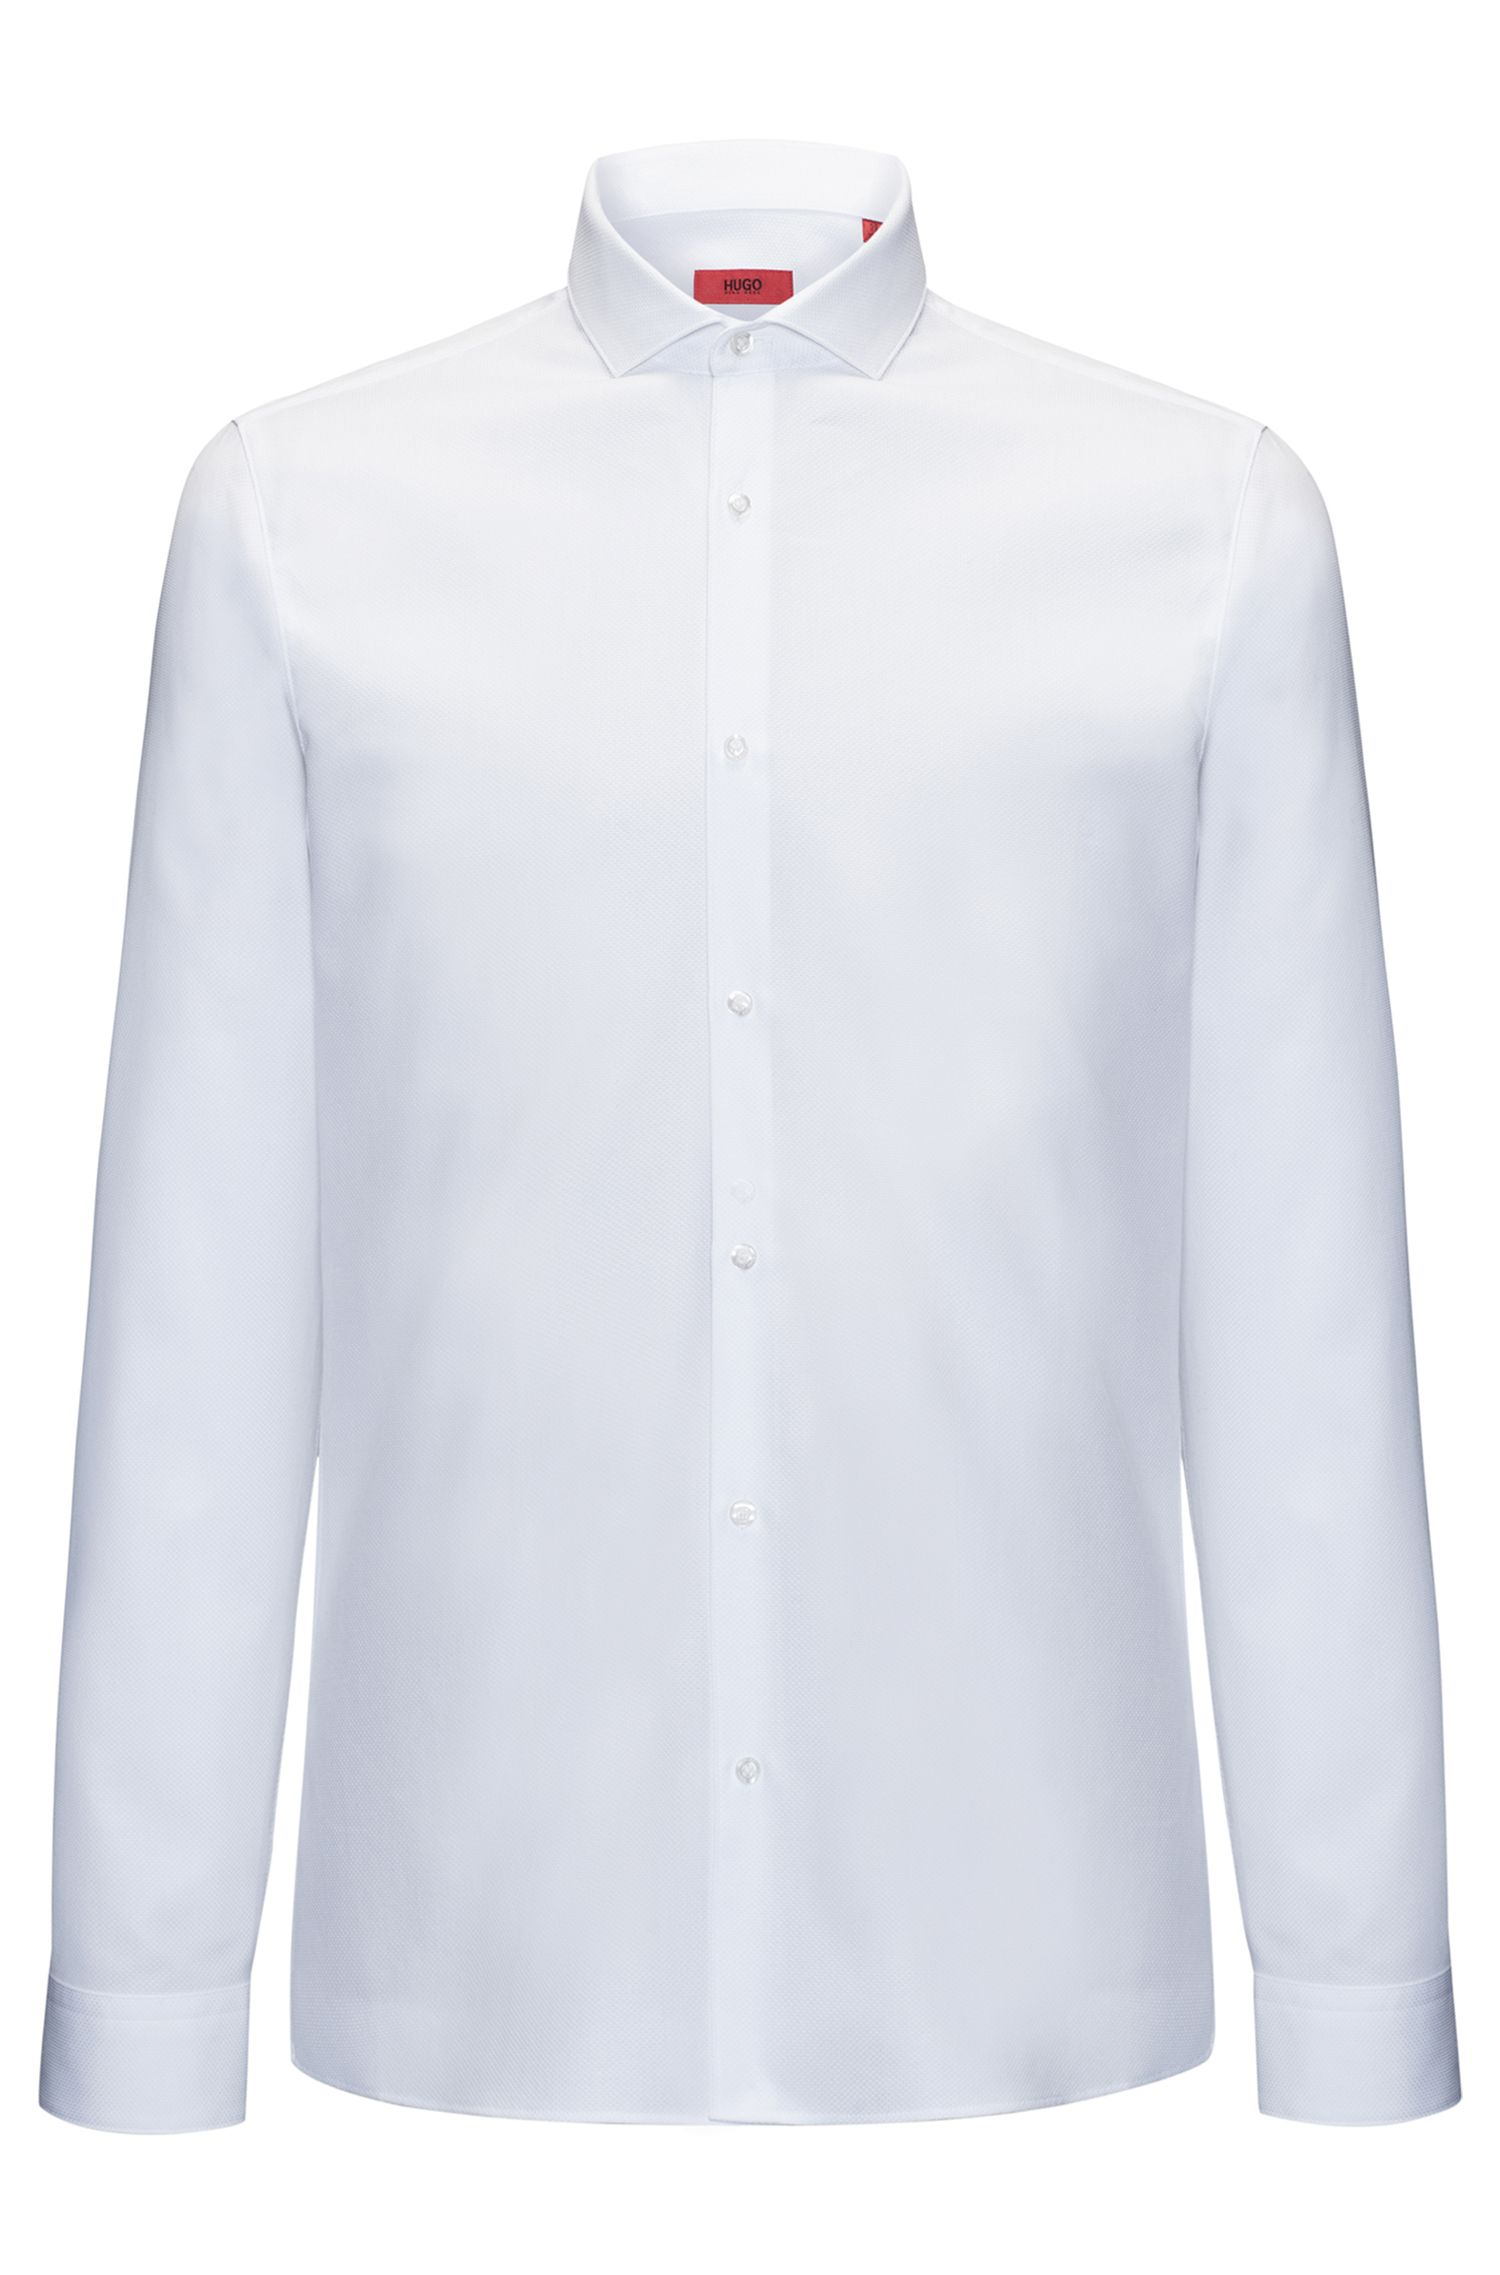 Extra-slim-fit shirt in soft cotton